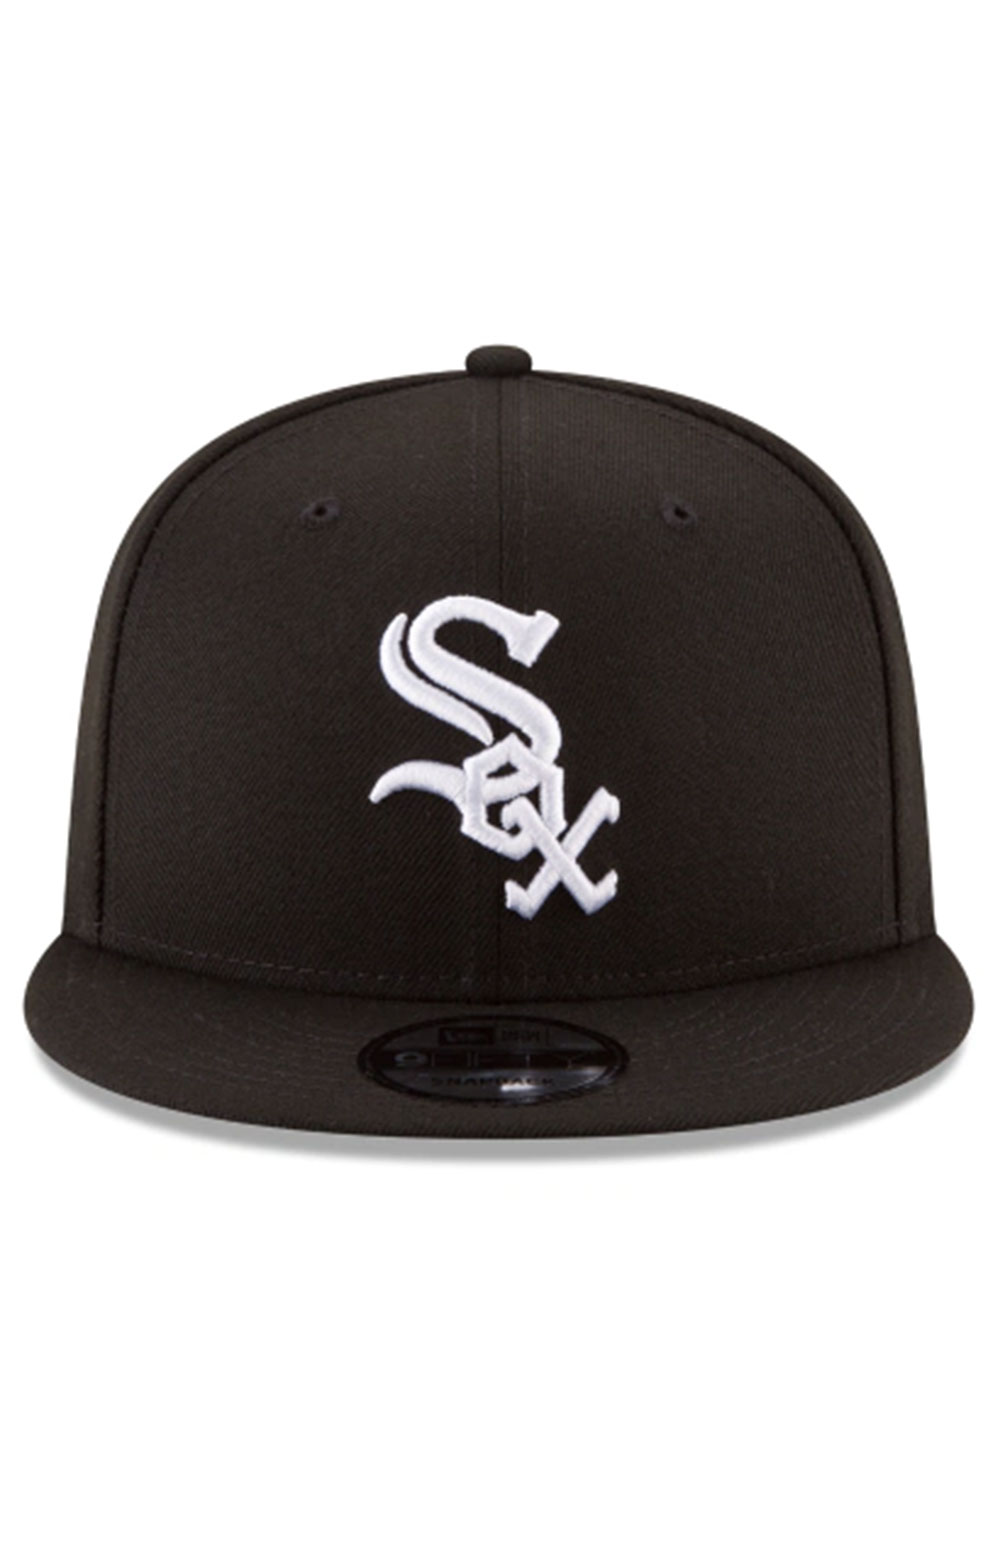 Chicago White Sox Team Color Basic 9Fifty Snap-Back Hat  4